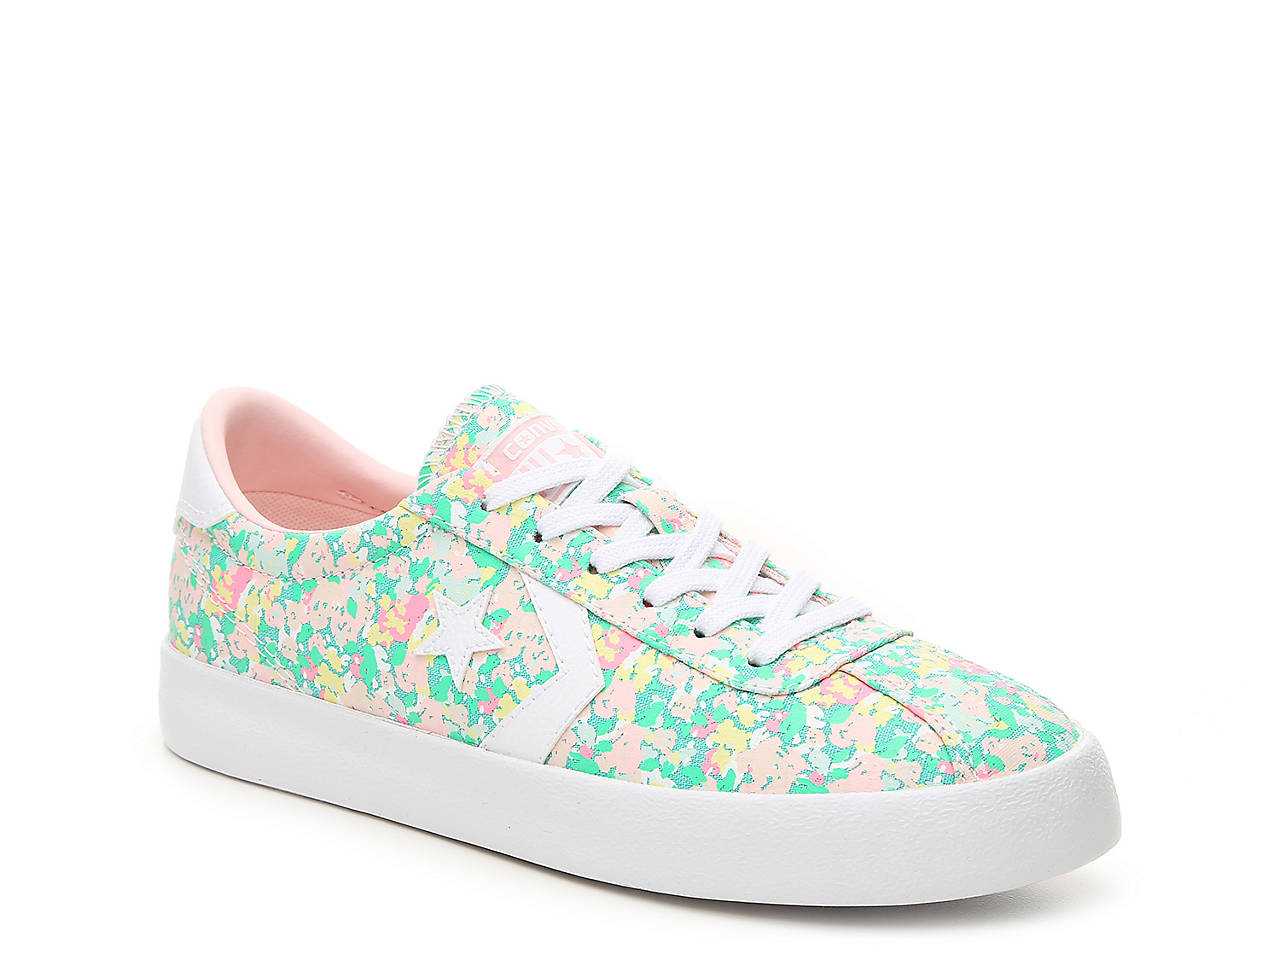 38288d4f1cd6f4 Converse Chuck Taylor All Star Floral Breakpoint Sneaker - Women s ...